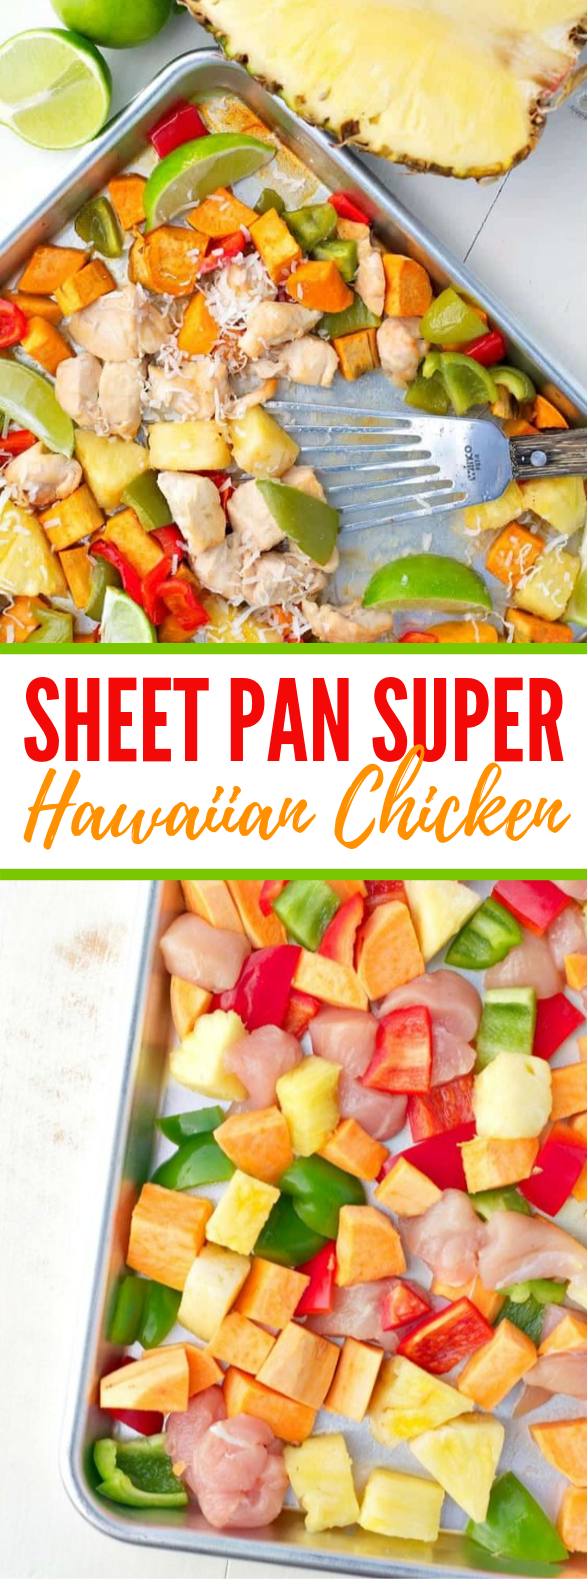 SHEET PAN SUPPER: HAWAIIAN CHICKEN #healthydinner #easyrecipes #chicken #sheetpan #diet